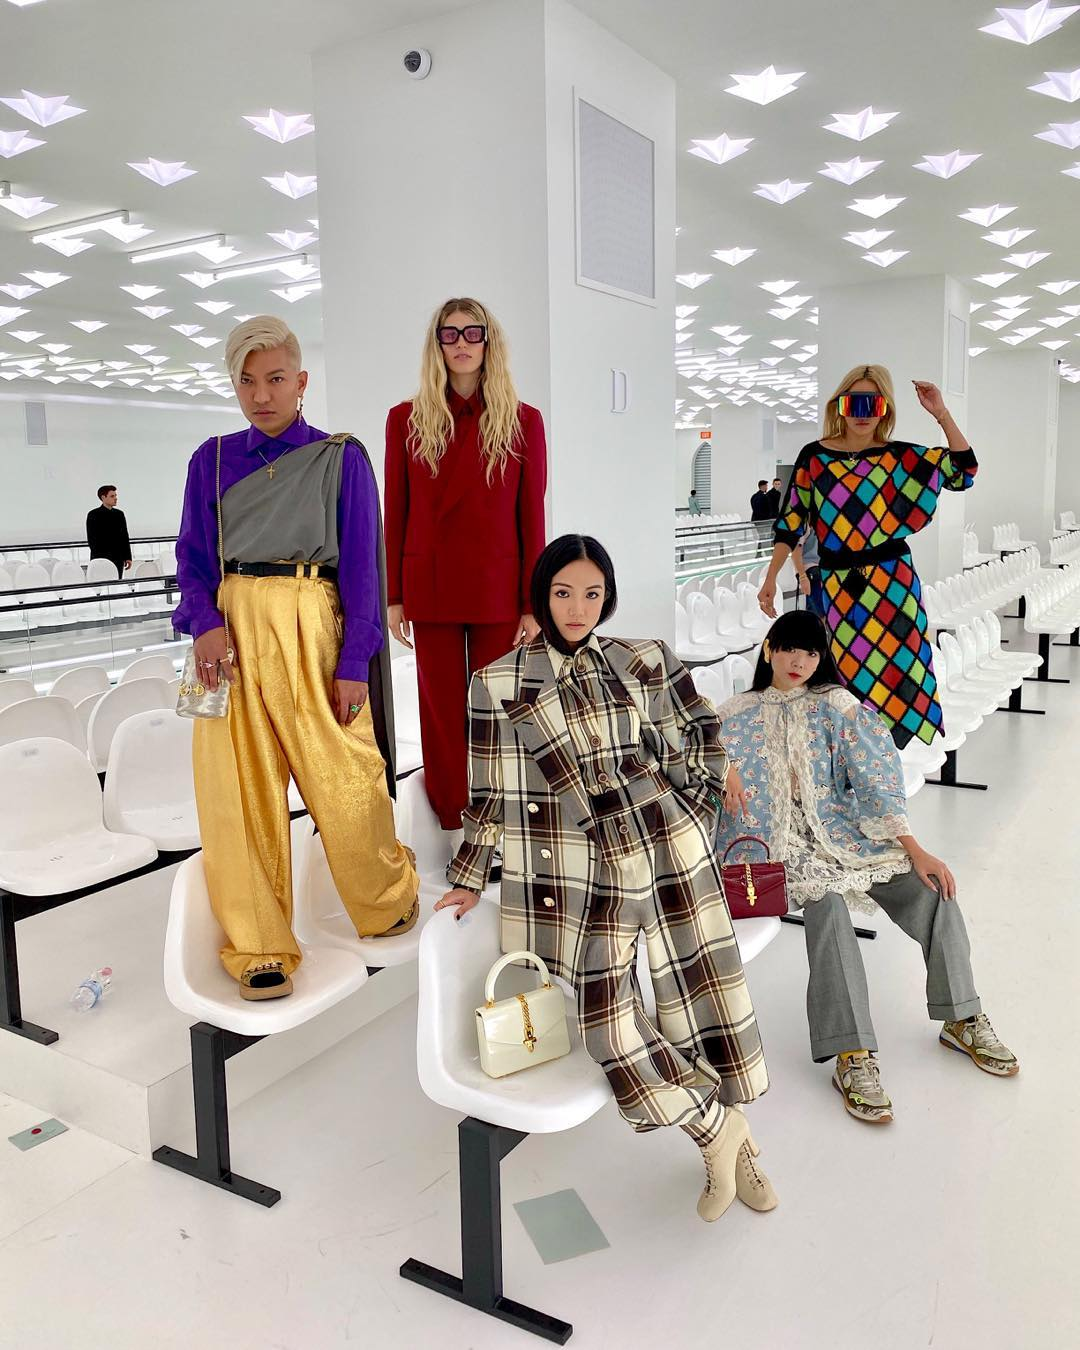 gucci-spring-2020-fashion-show-front-row-influencers